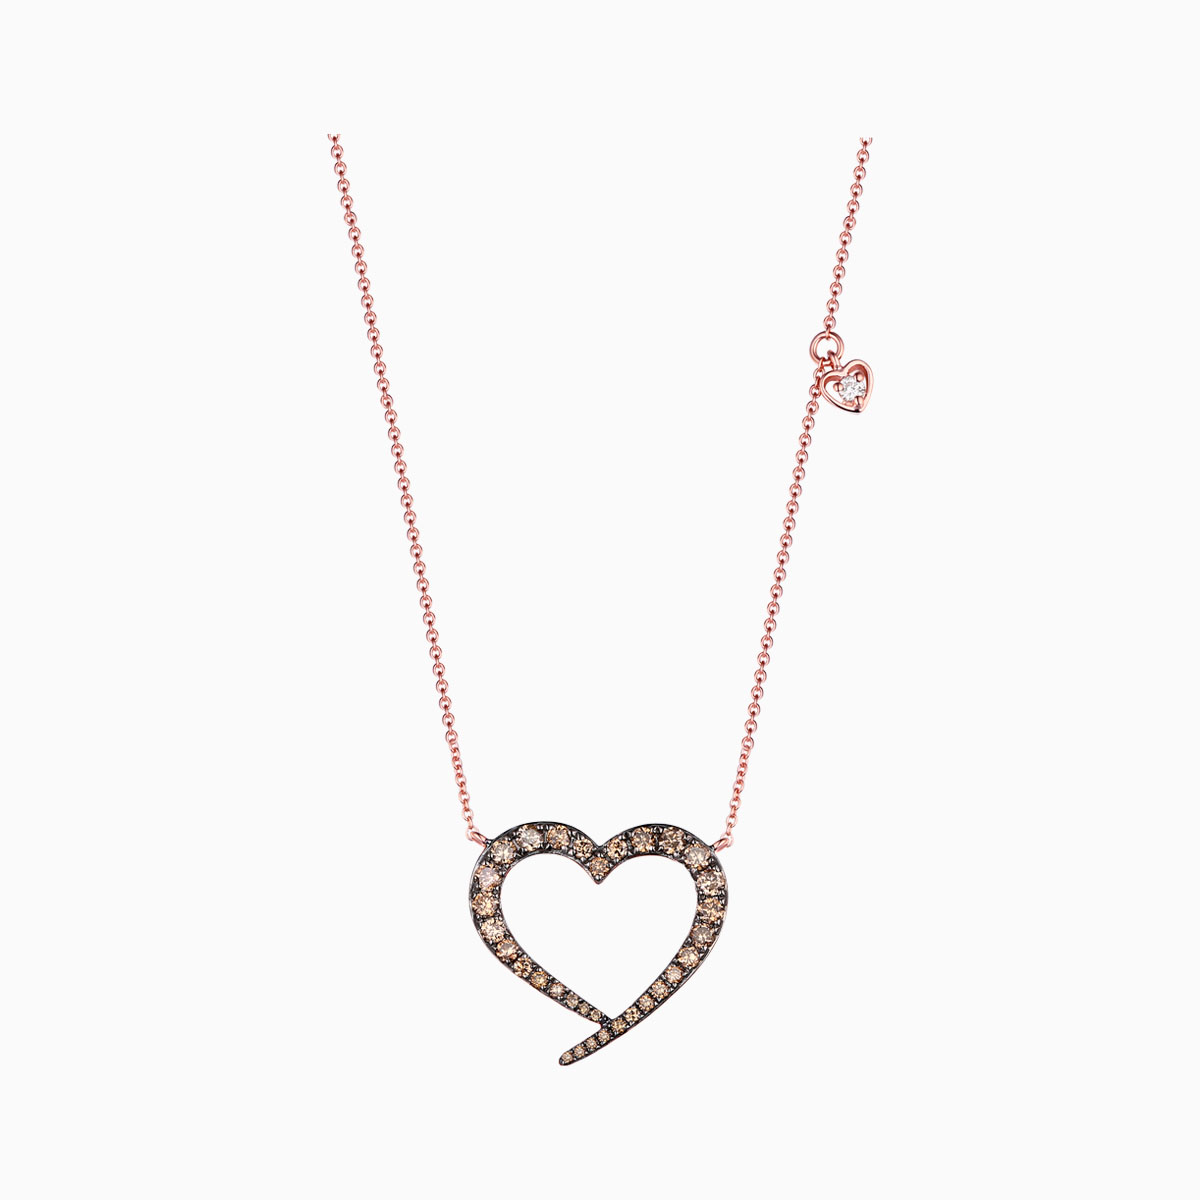 NL25725BRN- 14K Rose Gold Diamond Necklace, 0.62 TCW